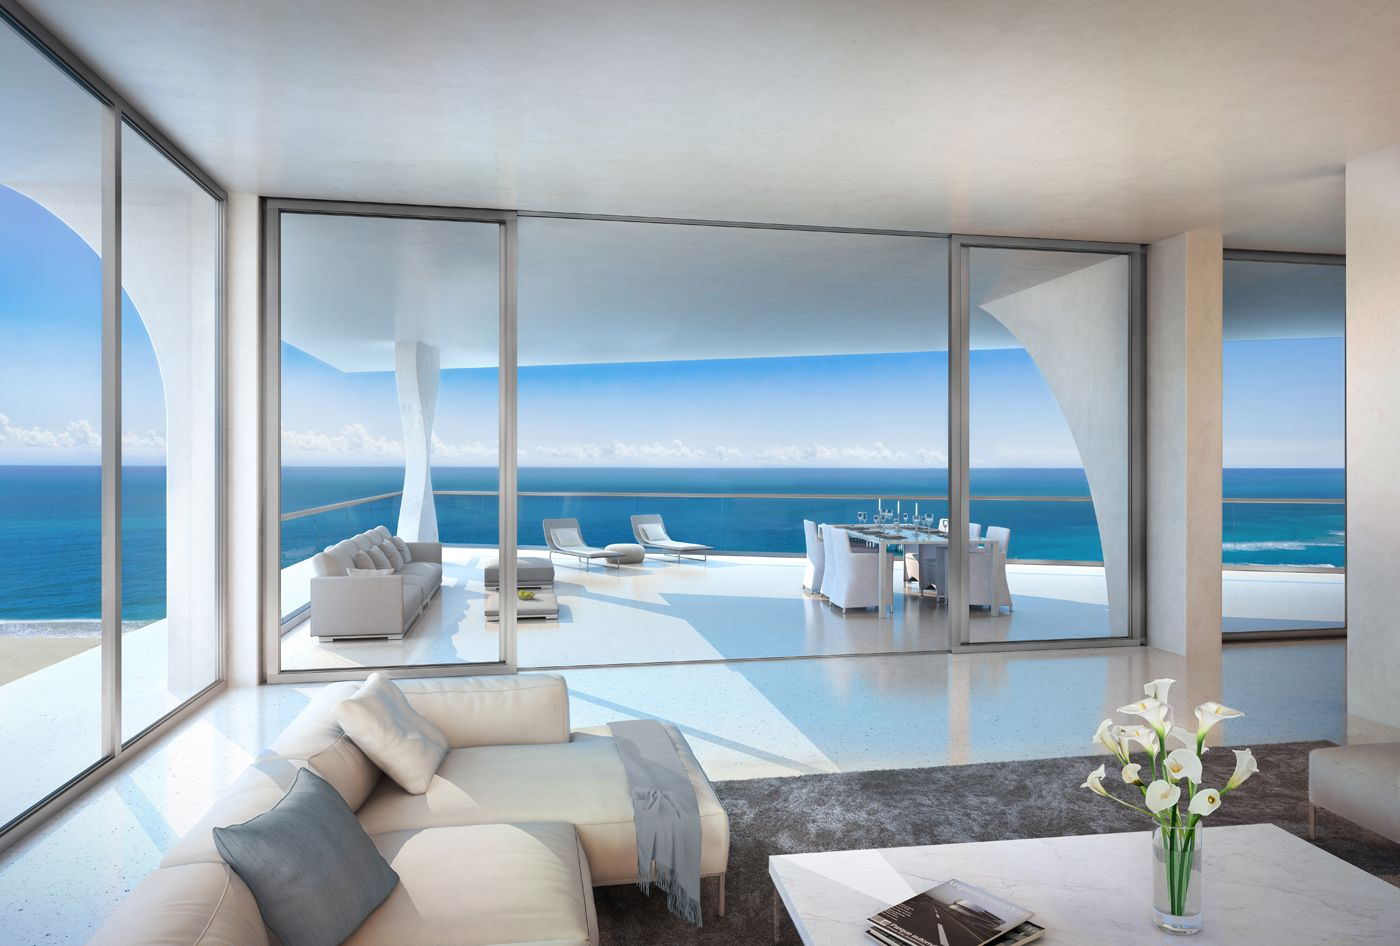 NEW Luxury Jade Signature Sunny Isles Beach Condos For Sale Oceanfront Miami Available At The